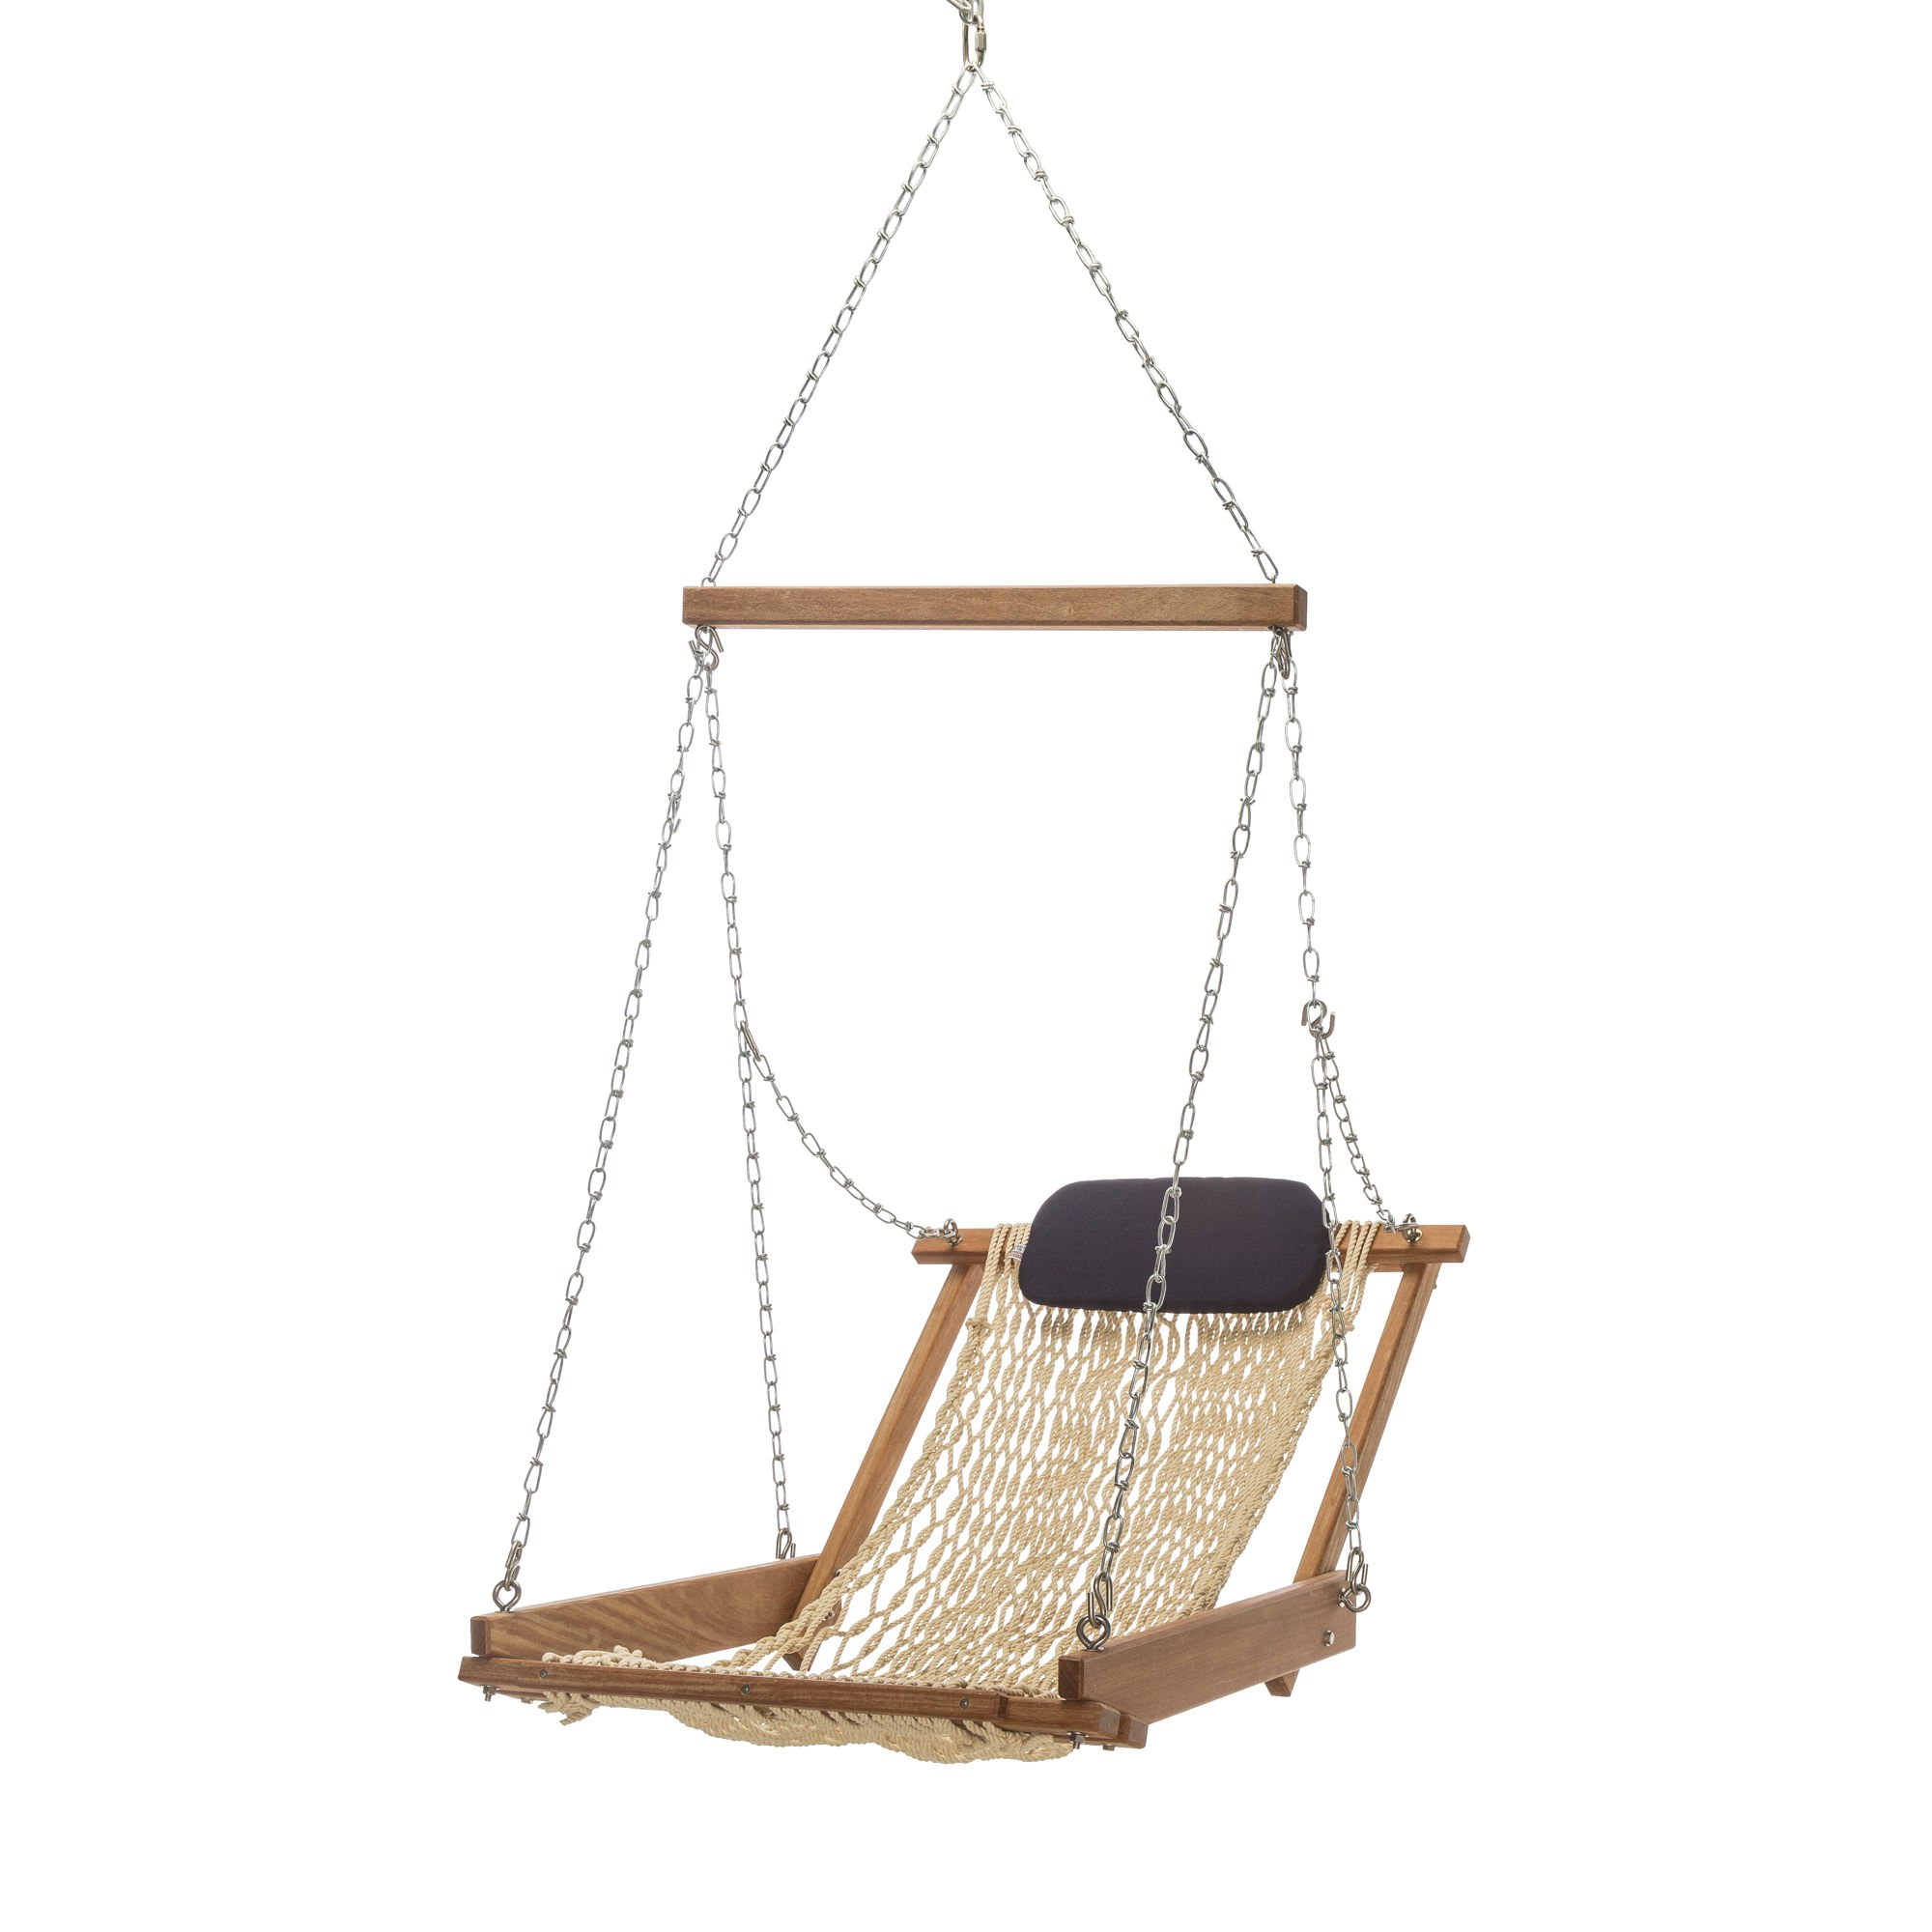 aluminum swing chair garden outdoor seater china product hanging lswntjeagsvb style rattan furniture magic double tape hammock